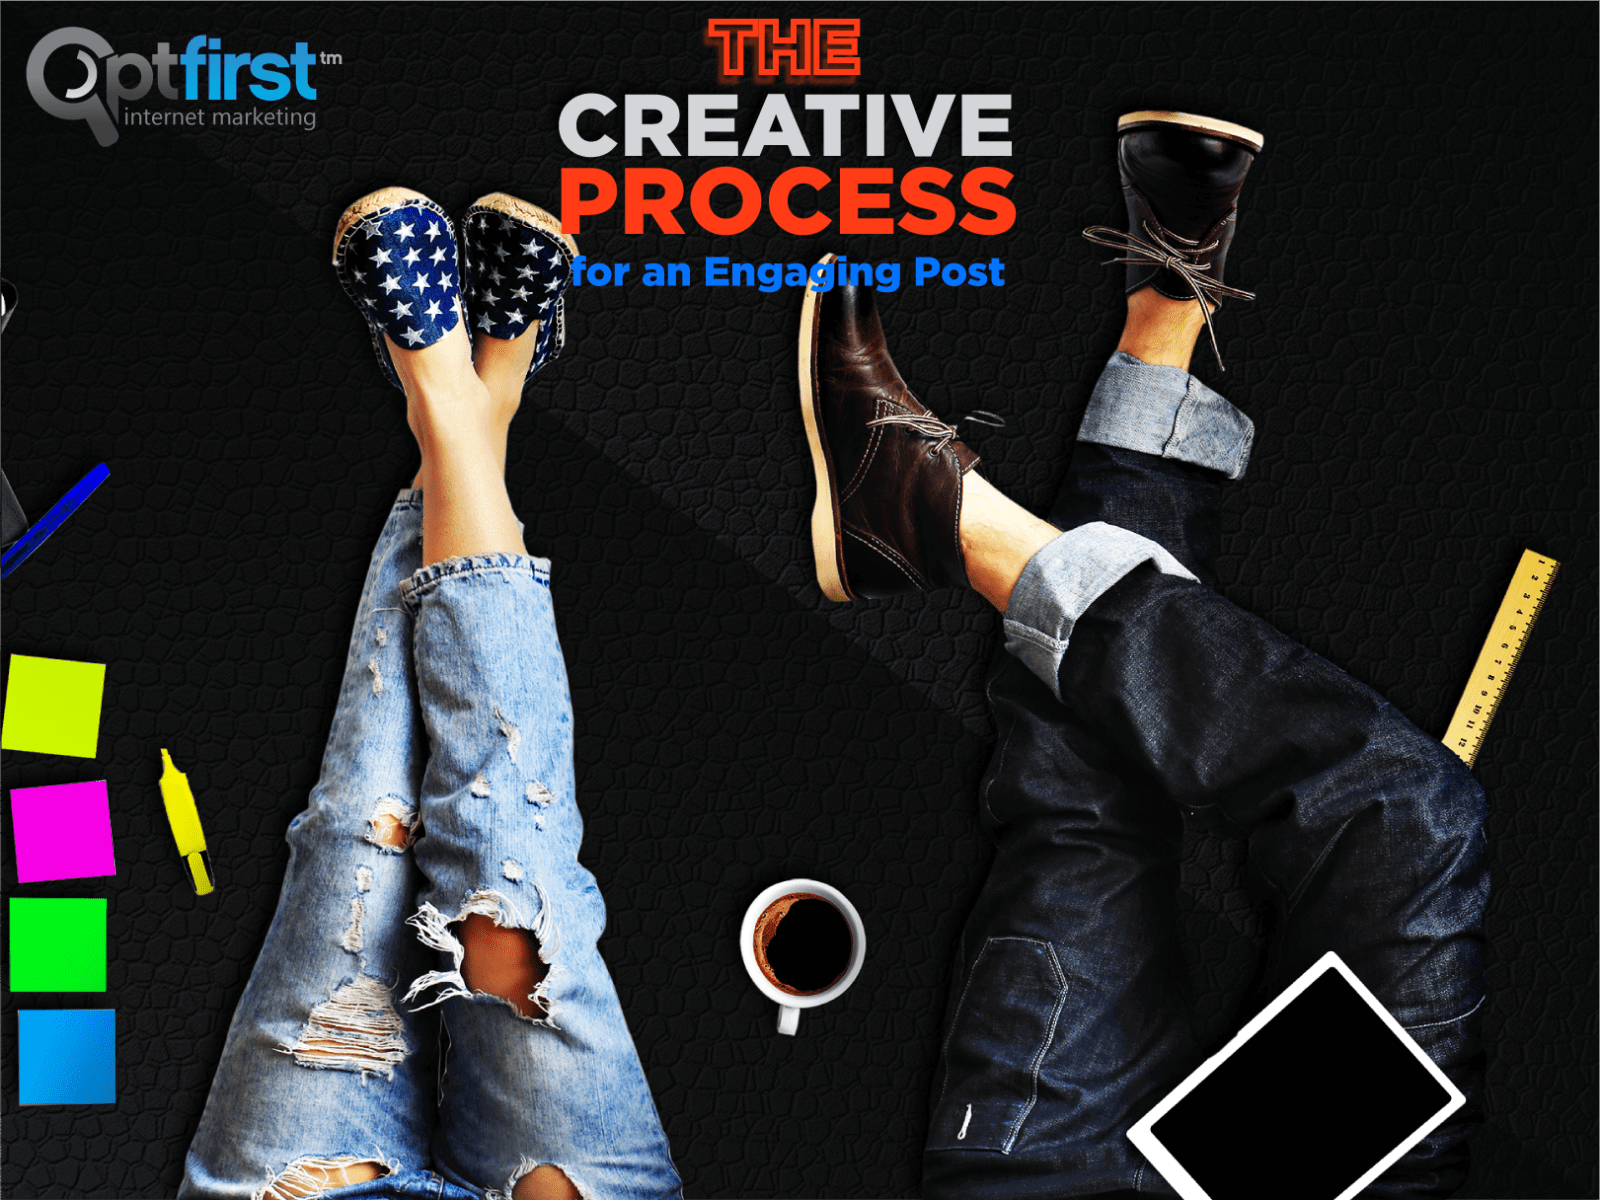 The Creative Process for an Engaging Post.